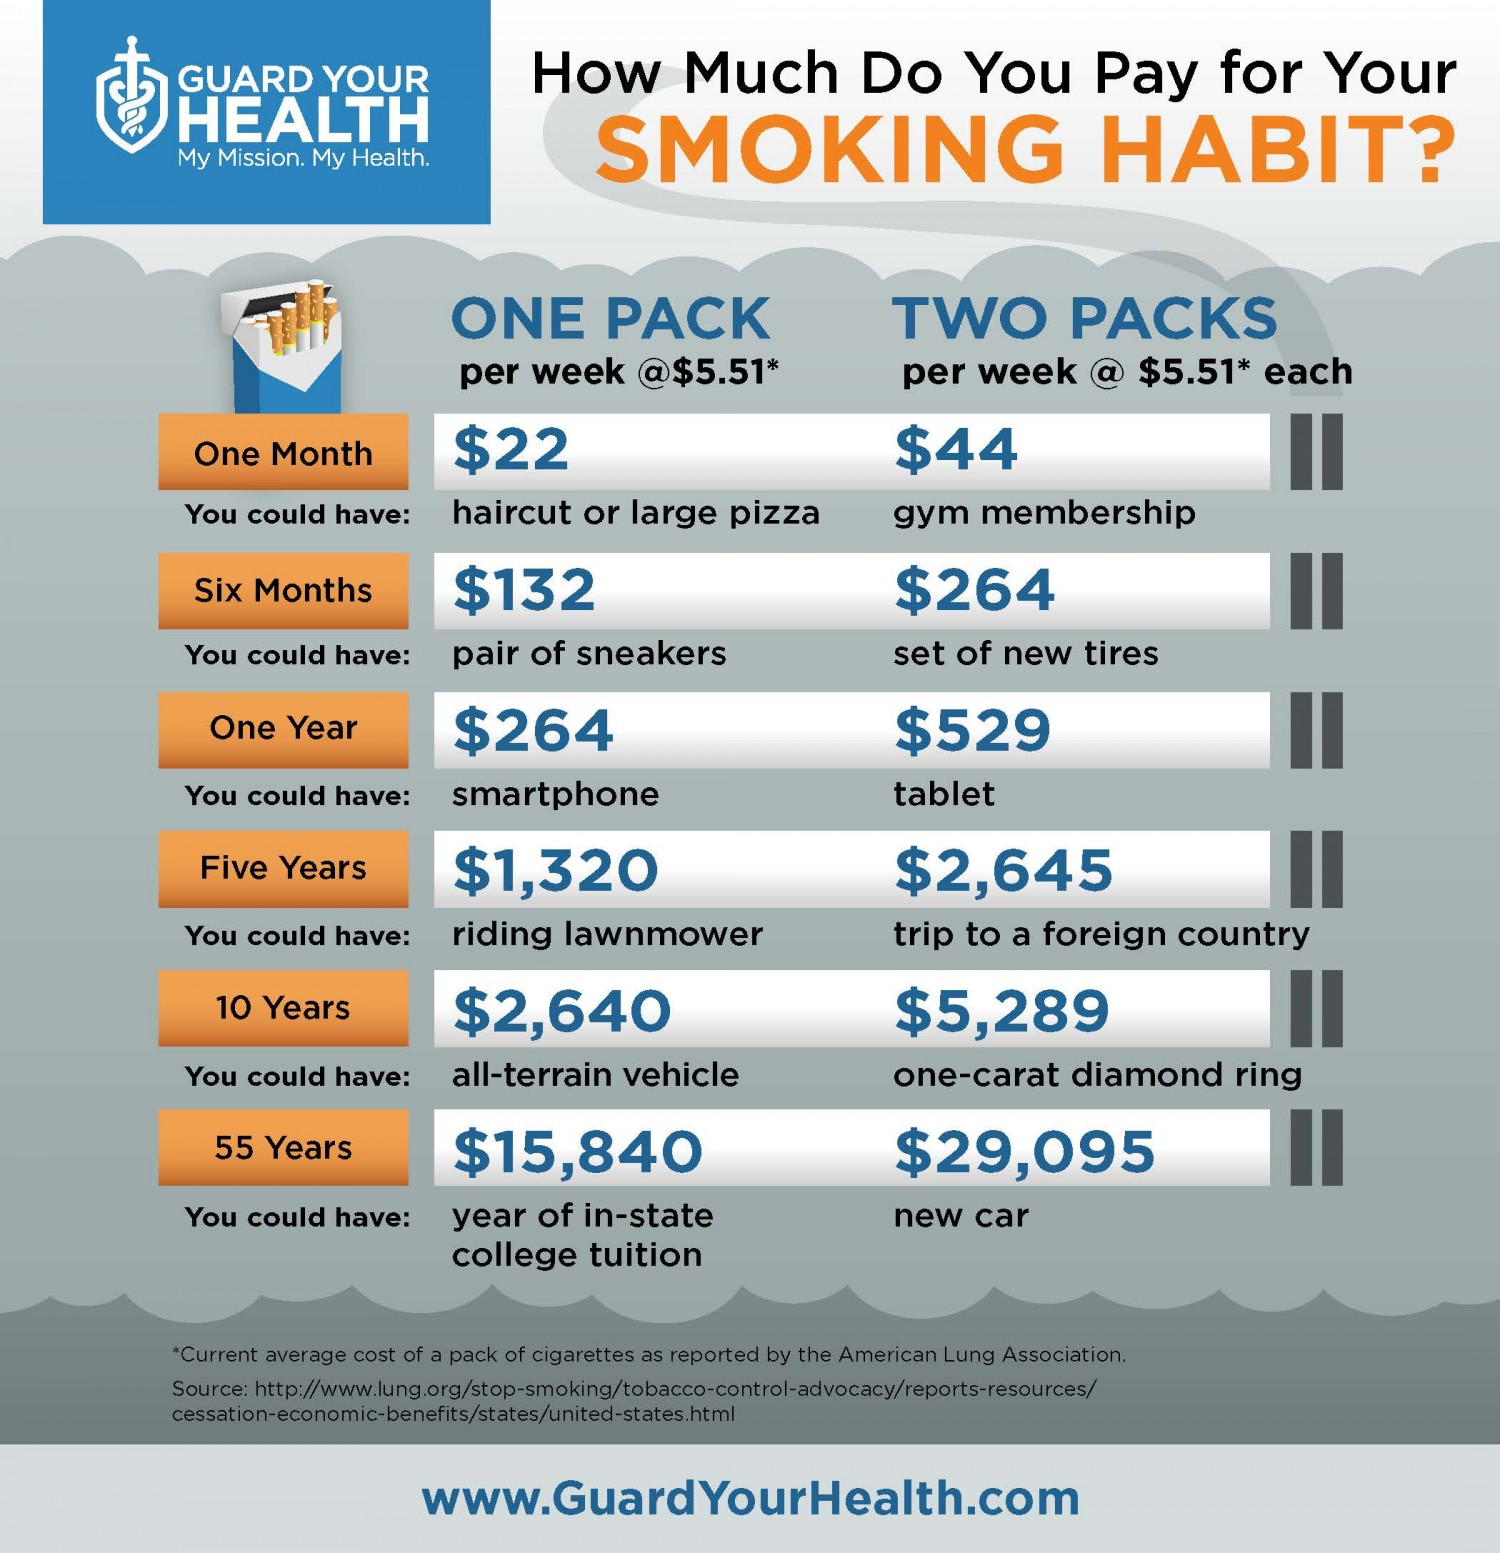 20. How Much Do You Pay for Your Smoking Habit